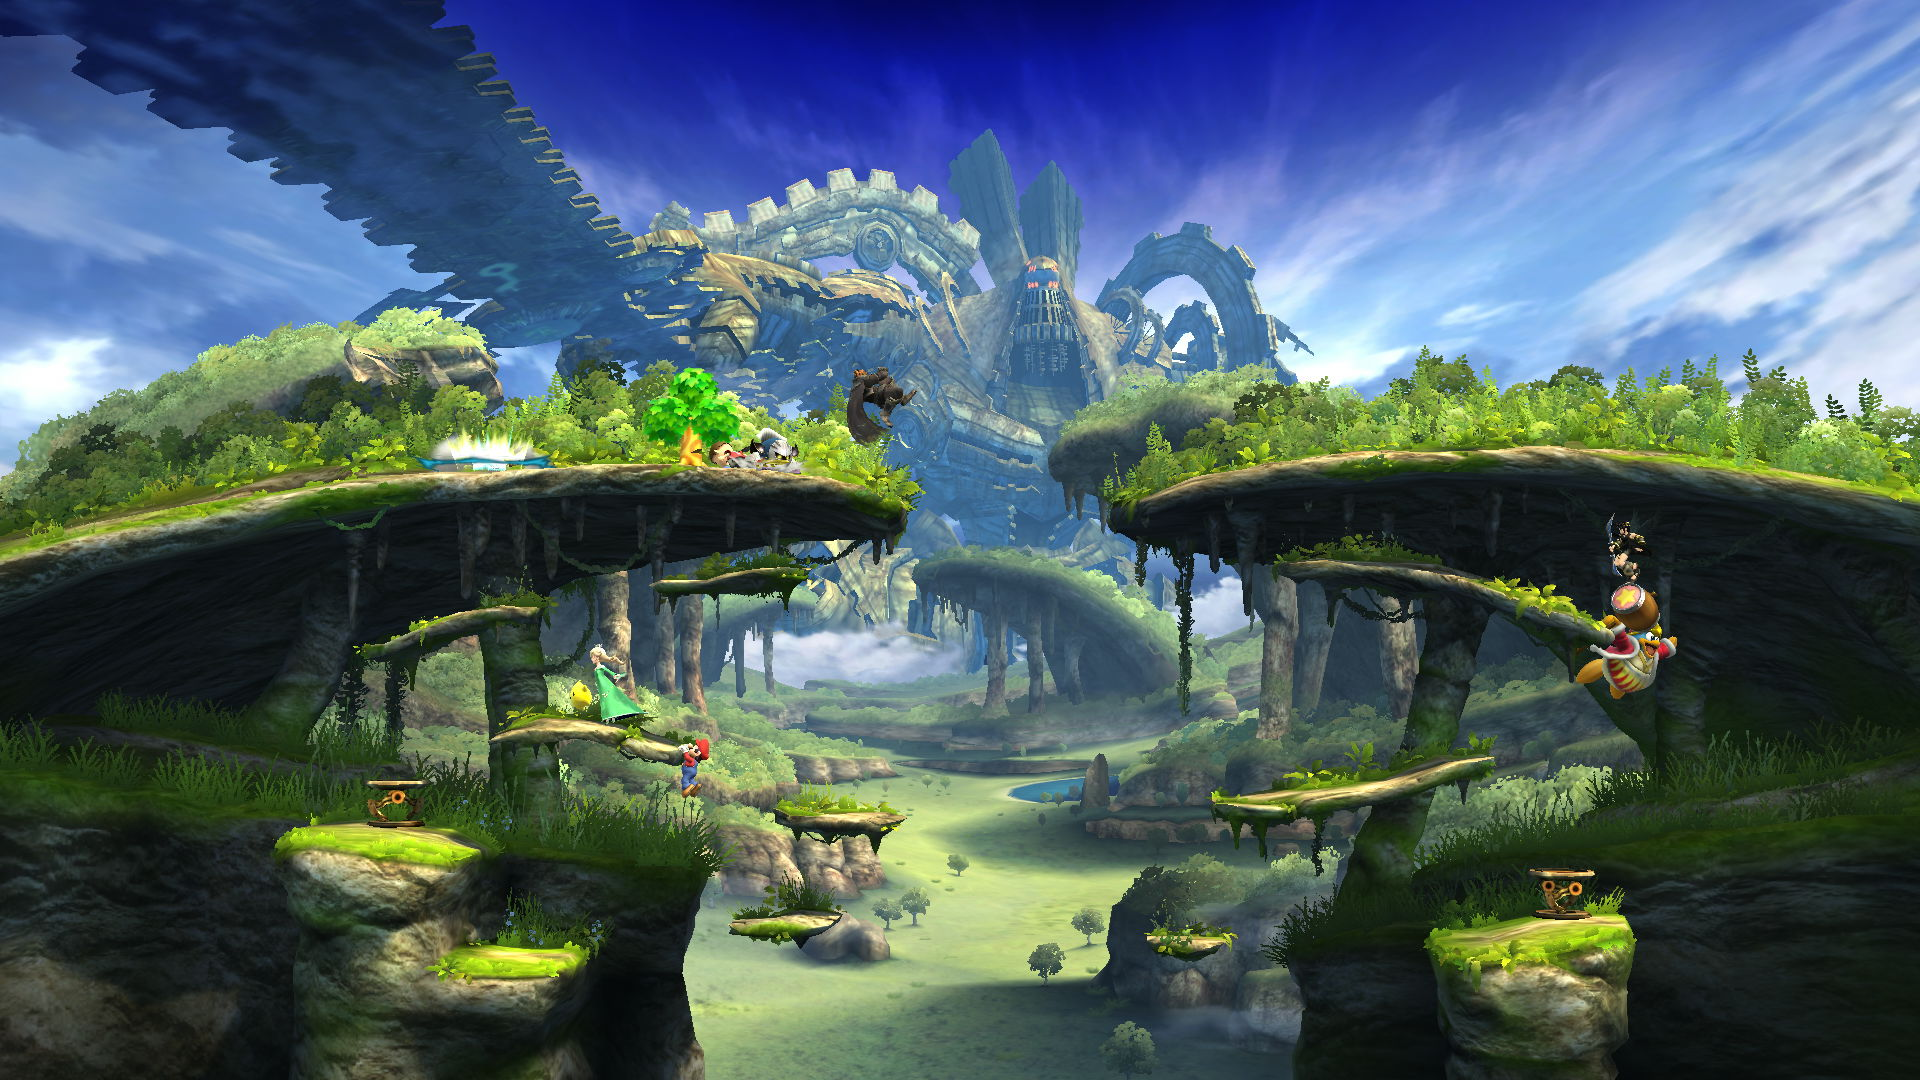 The new stages look gorgeous like Gaur Plains from Xenoblade Chronicles.